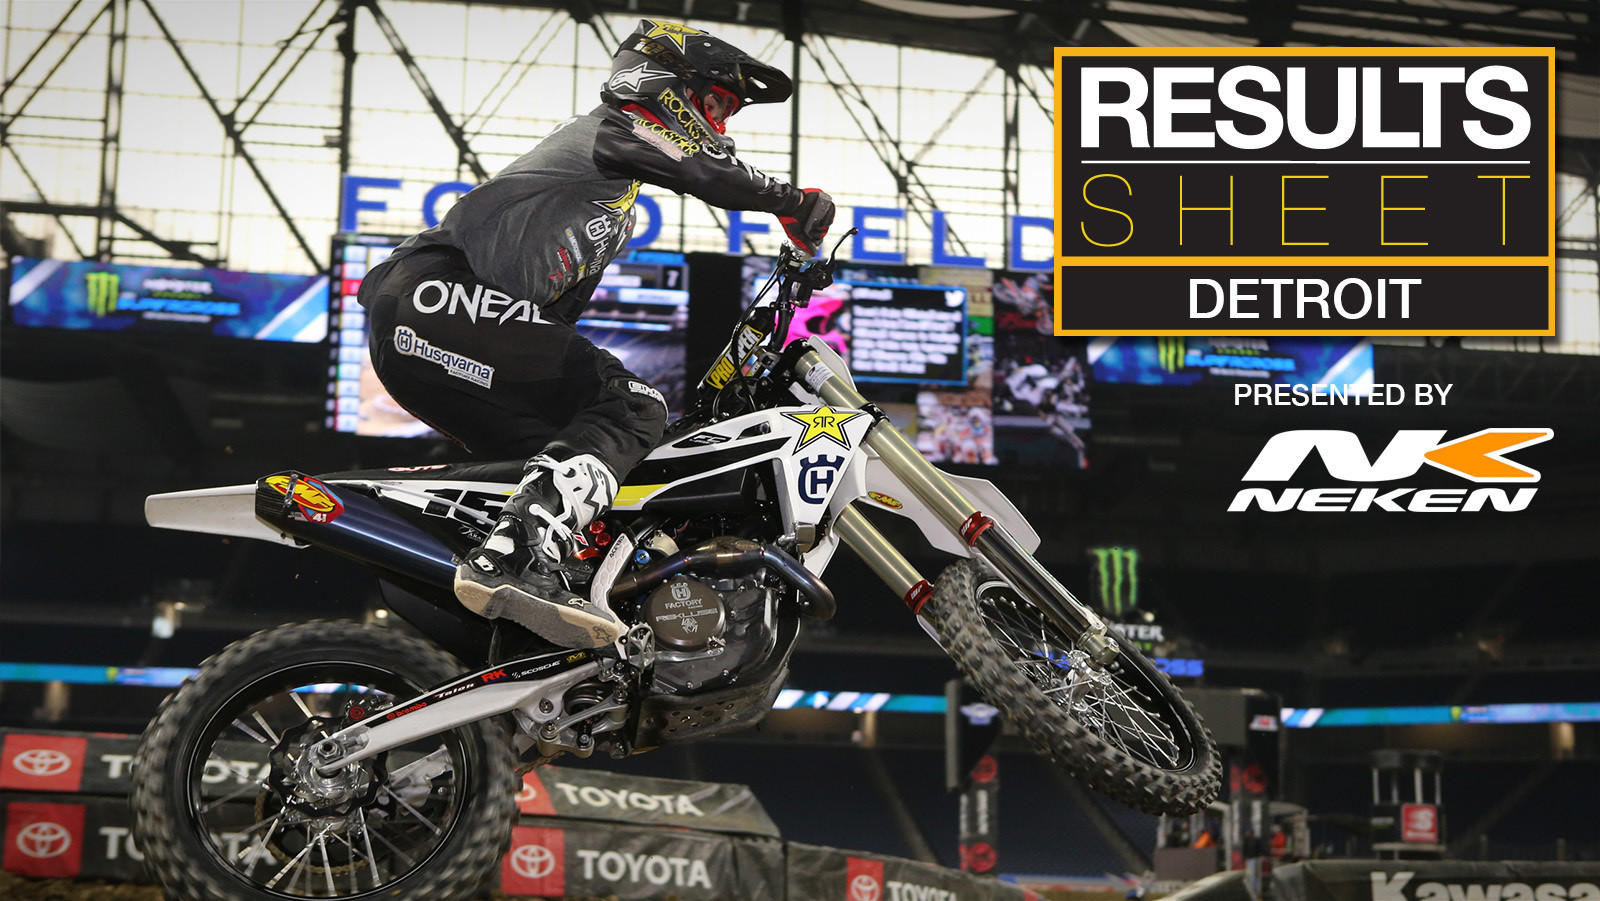 Results Sheet: 2019 Detroit Supercross